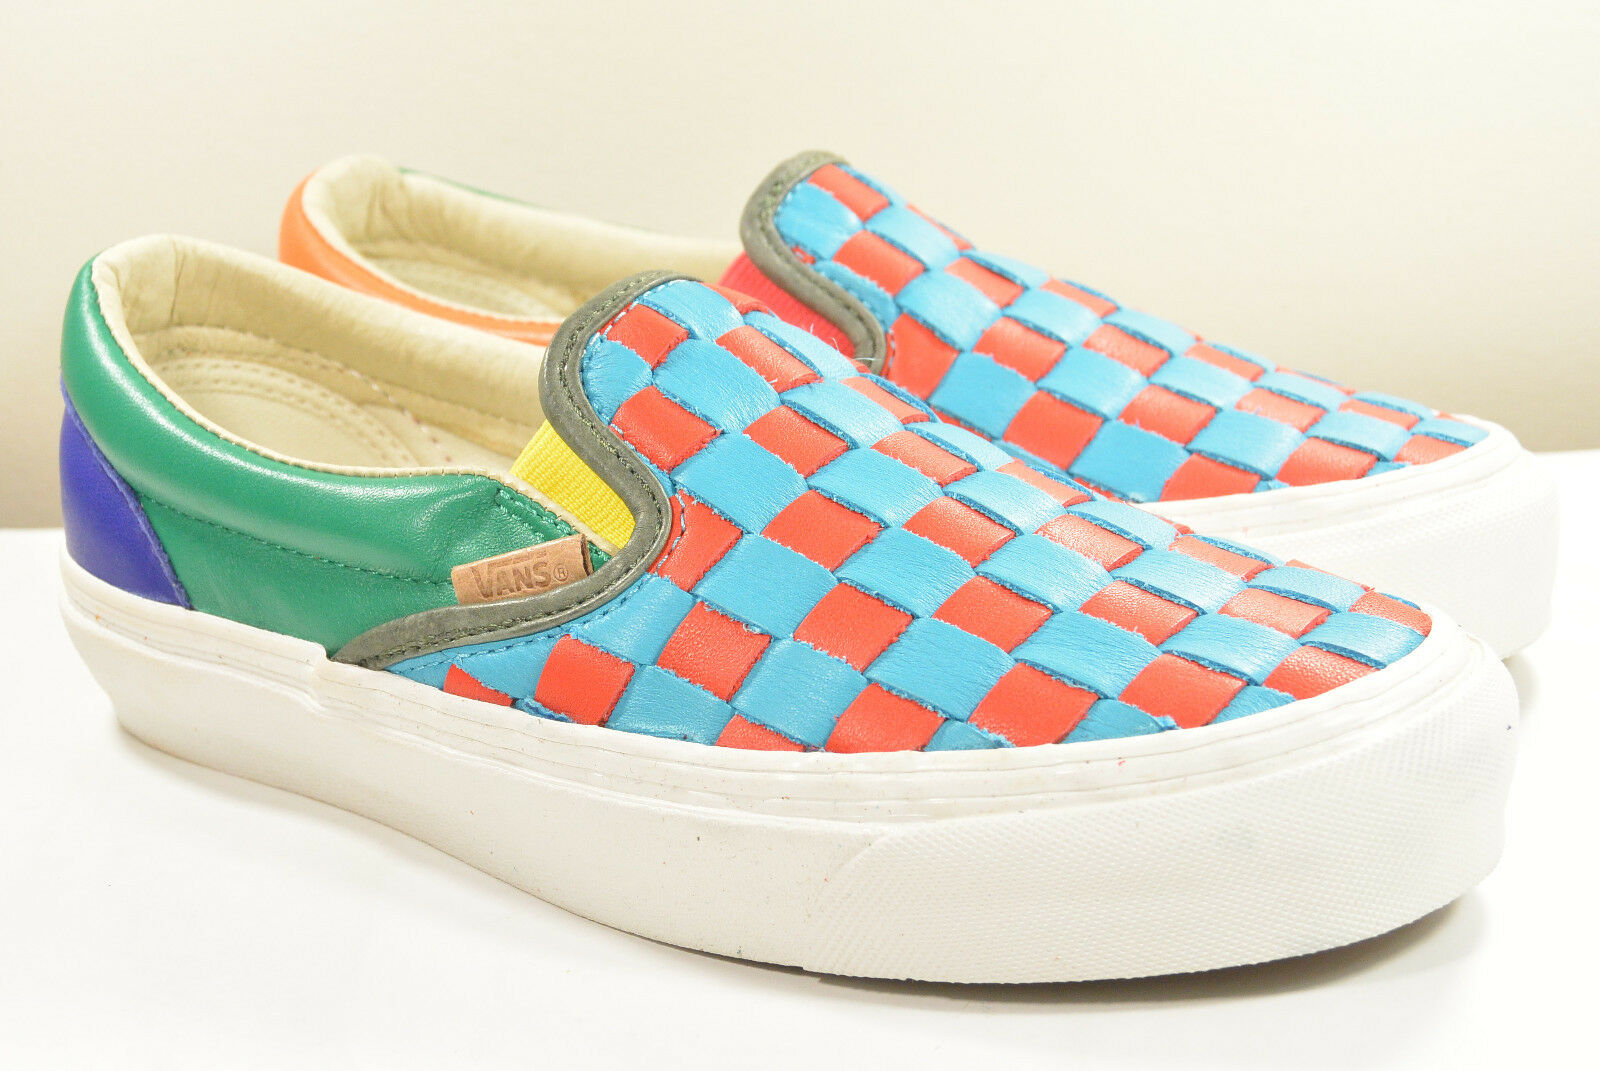 DS 2015 VANS VAULT CHECKERED PAST OG LX SLIP-ON Uomo 4.5 WMN 6 OFF THE WALL